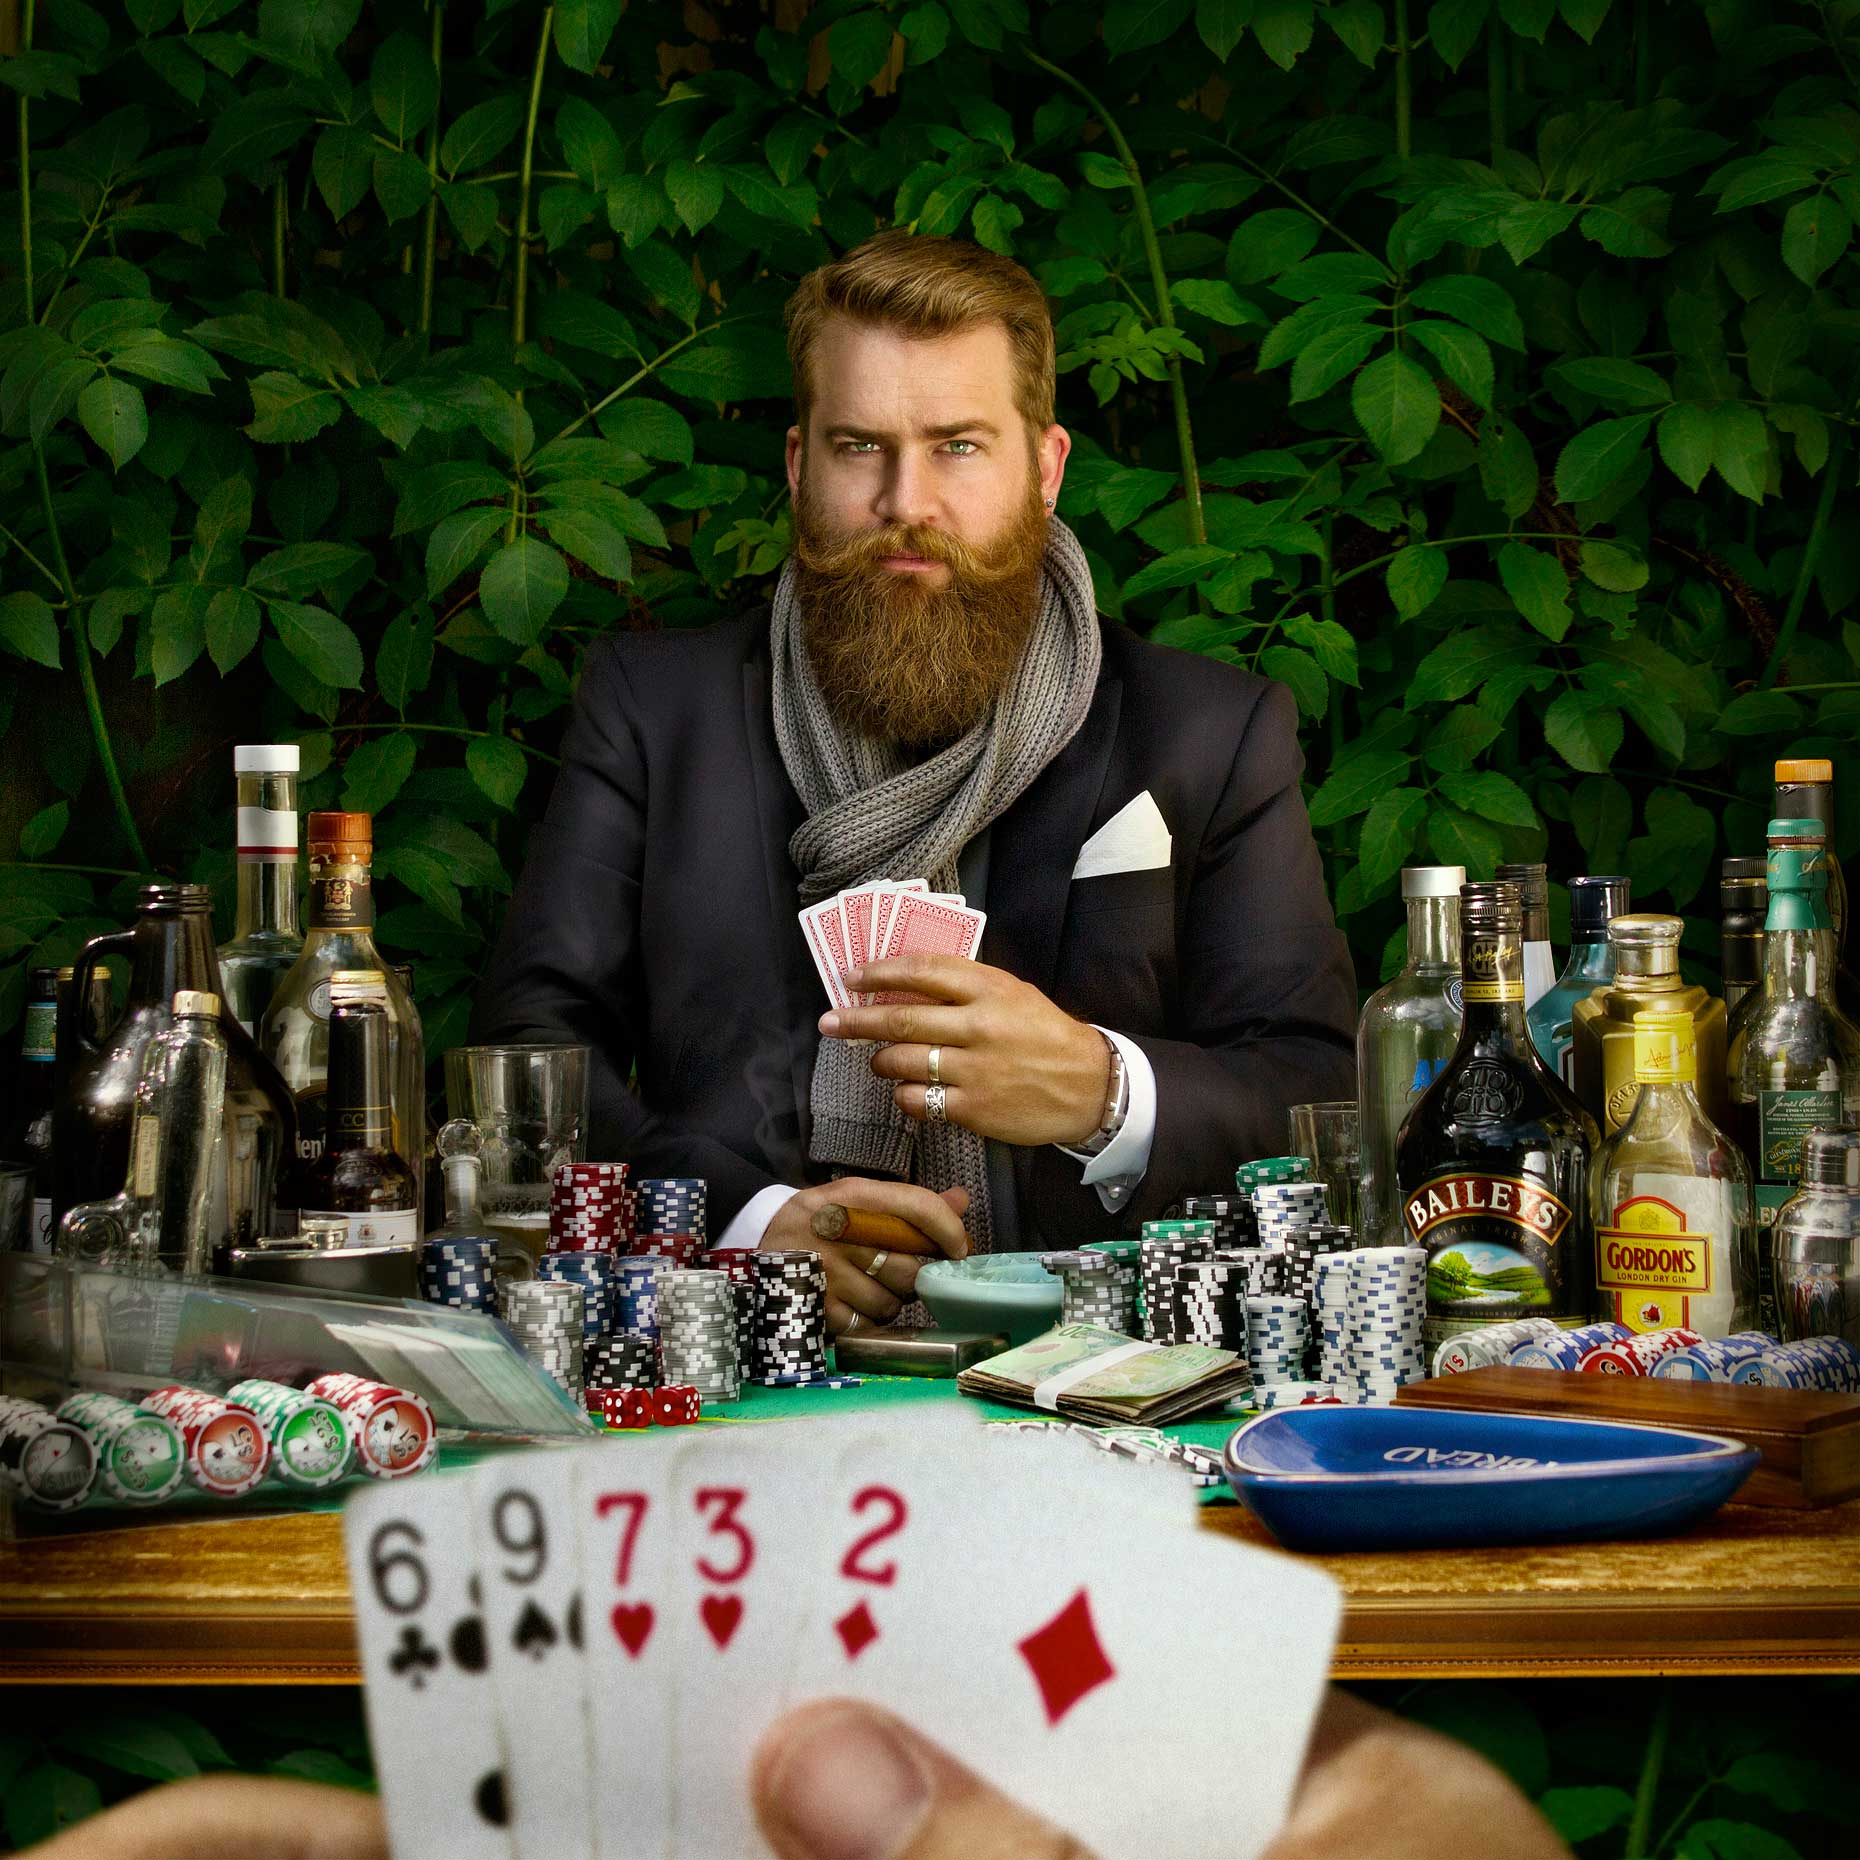 Photo-Imaging-illustration-Poker Face-Mardo El-Noor